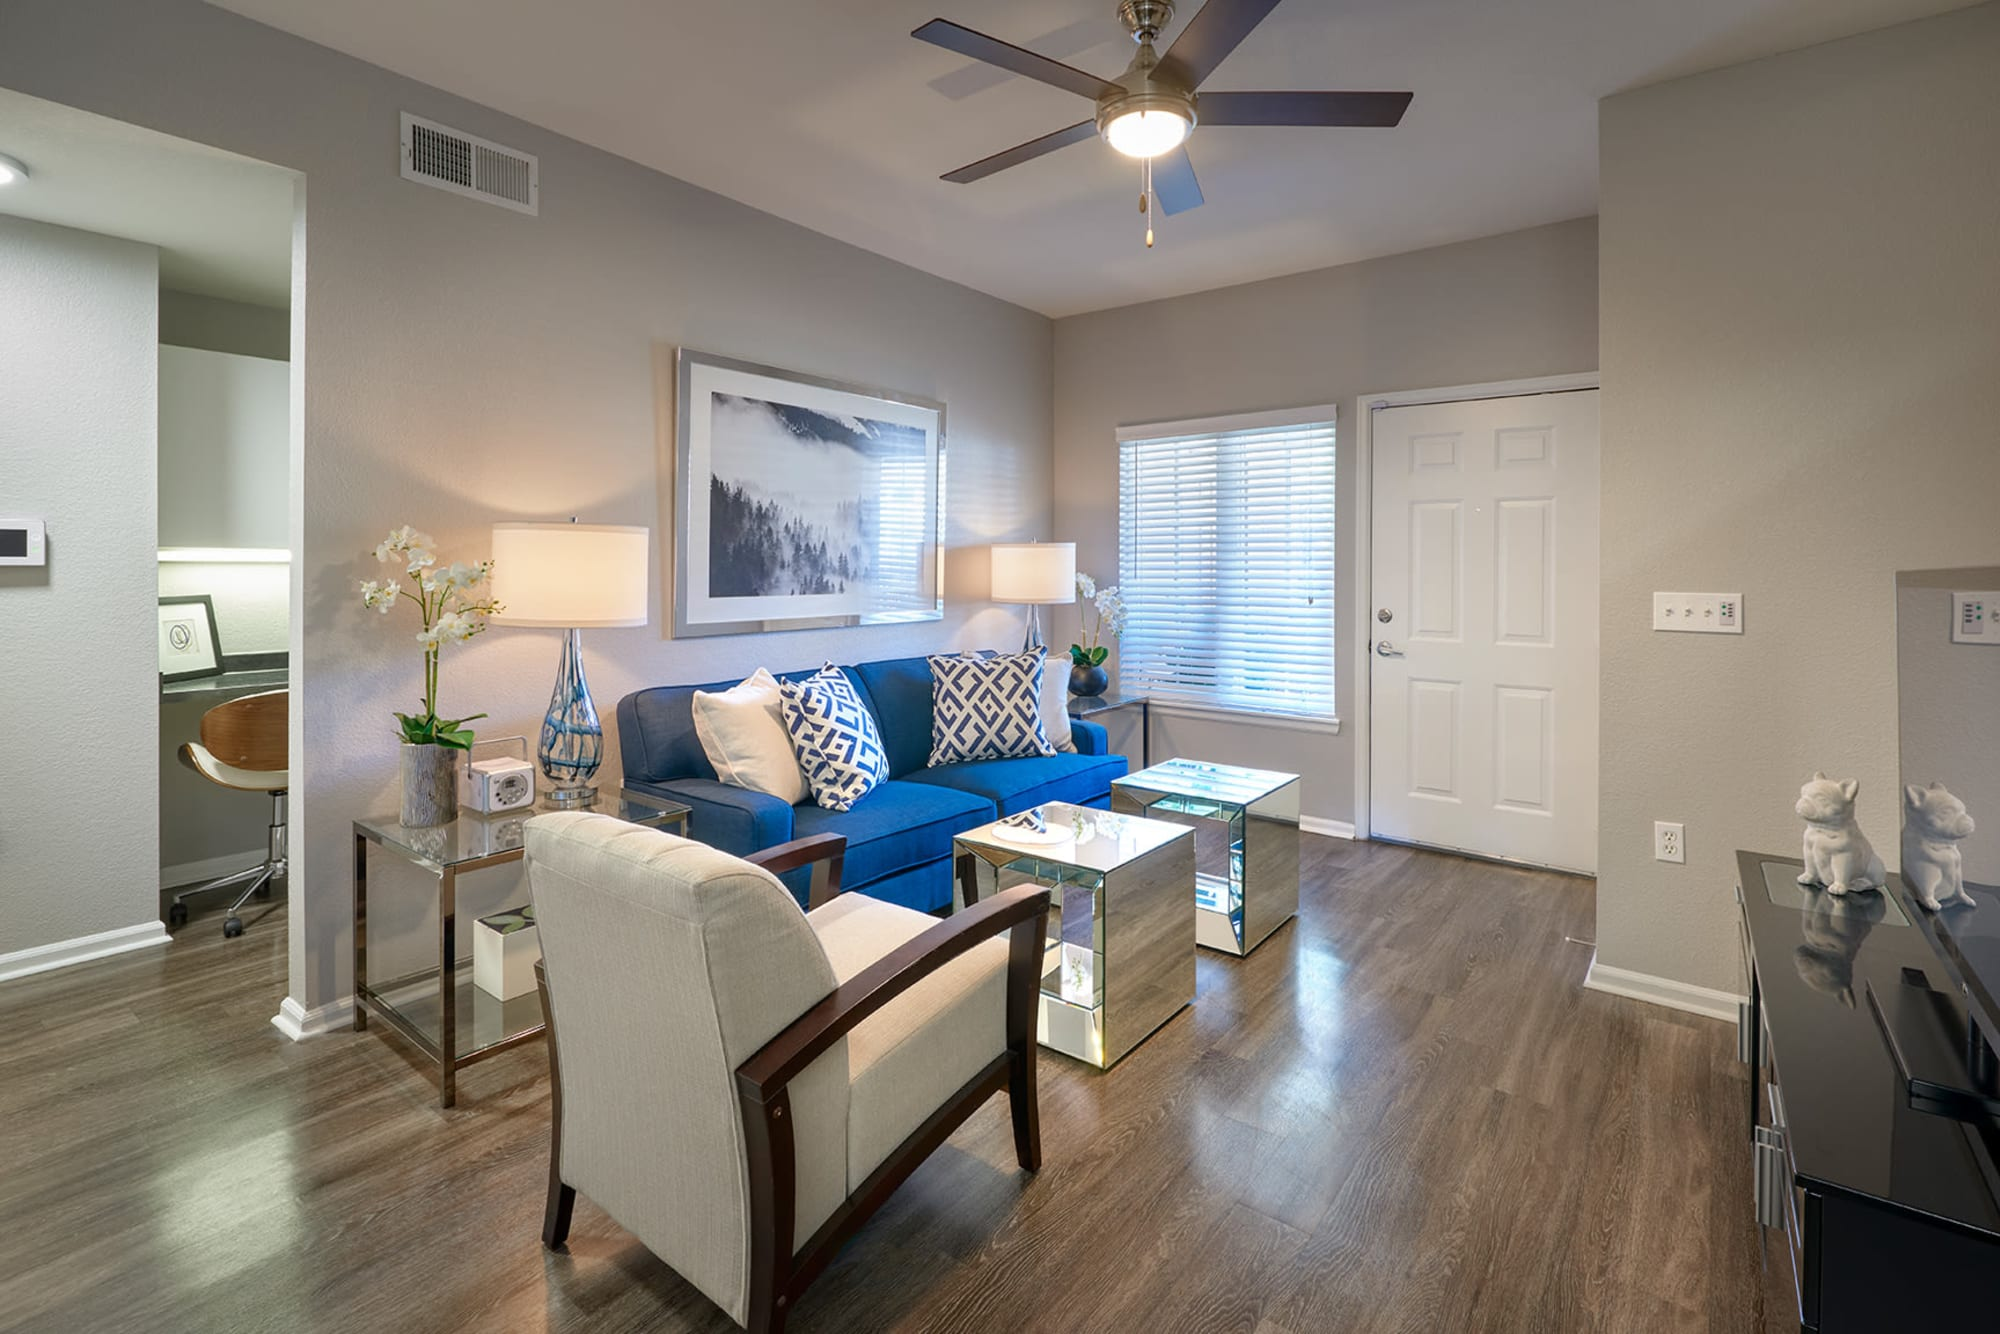 Furnished living room at Crestone Apartments in Aurora, Colorado